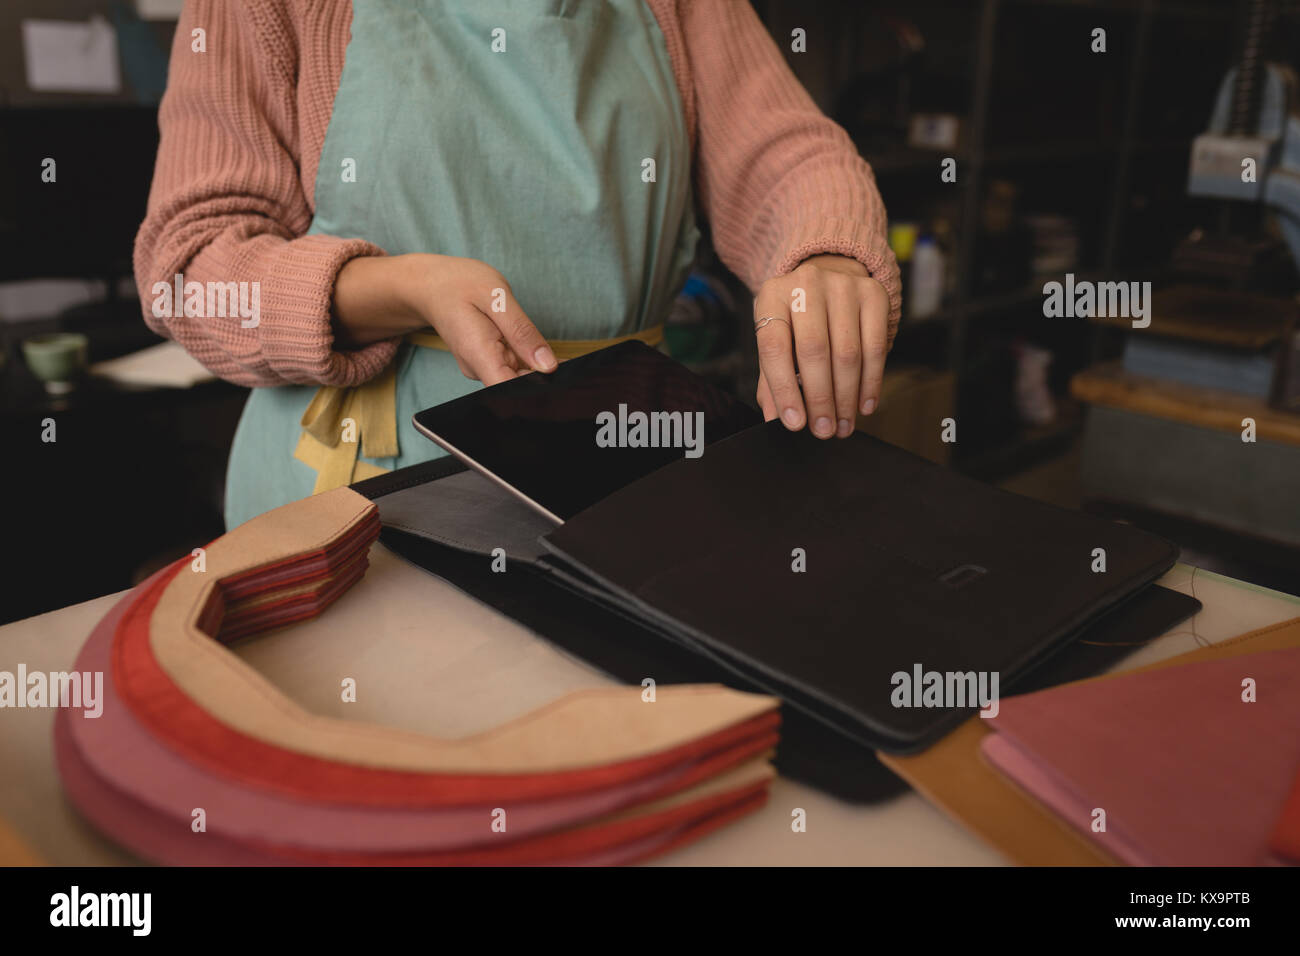 Female worker keeping digital tablet on leather pouch - Stock Image